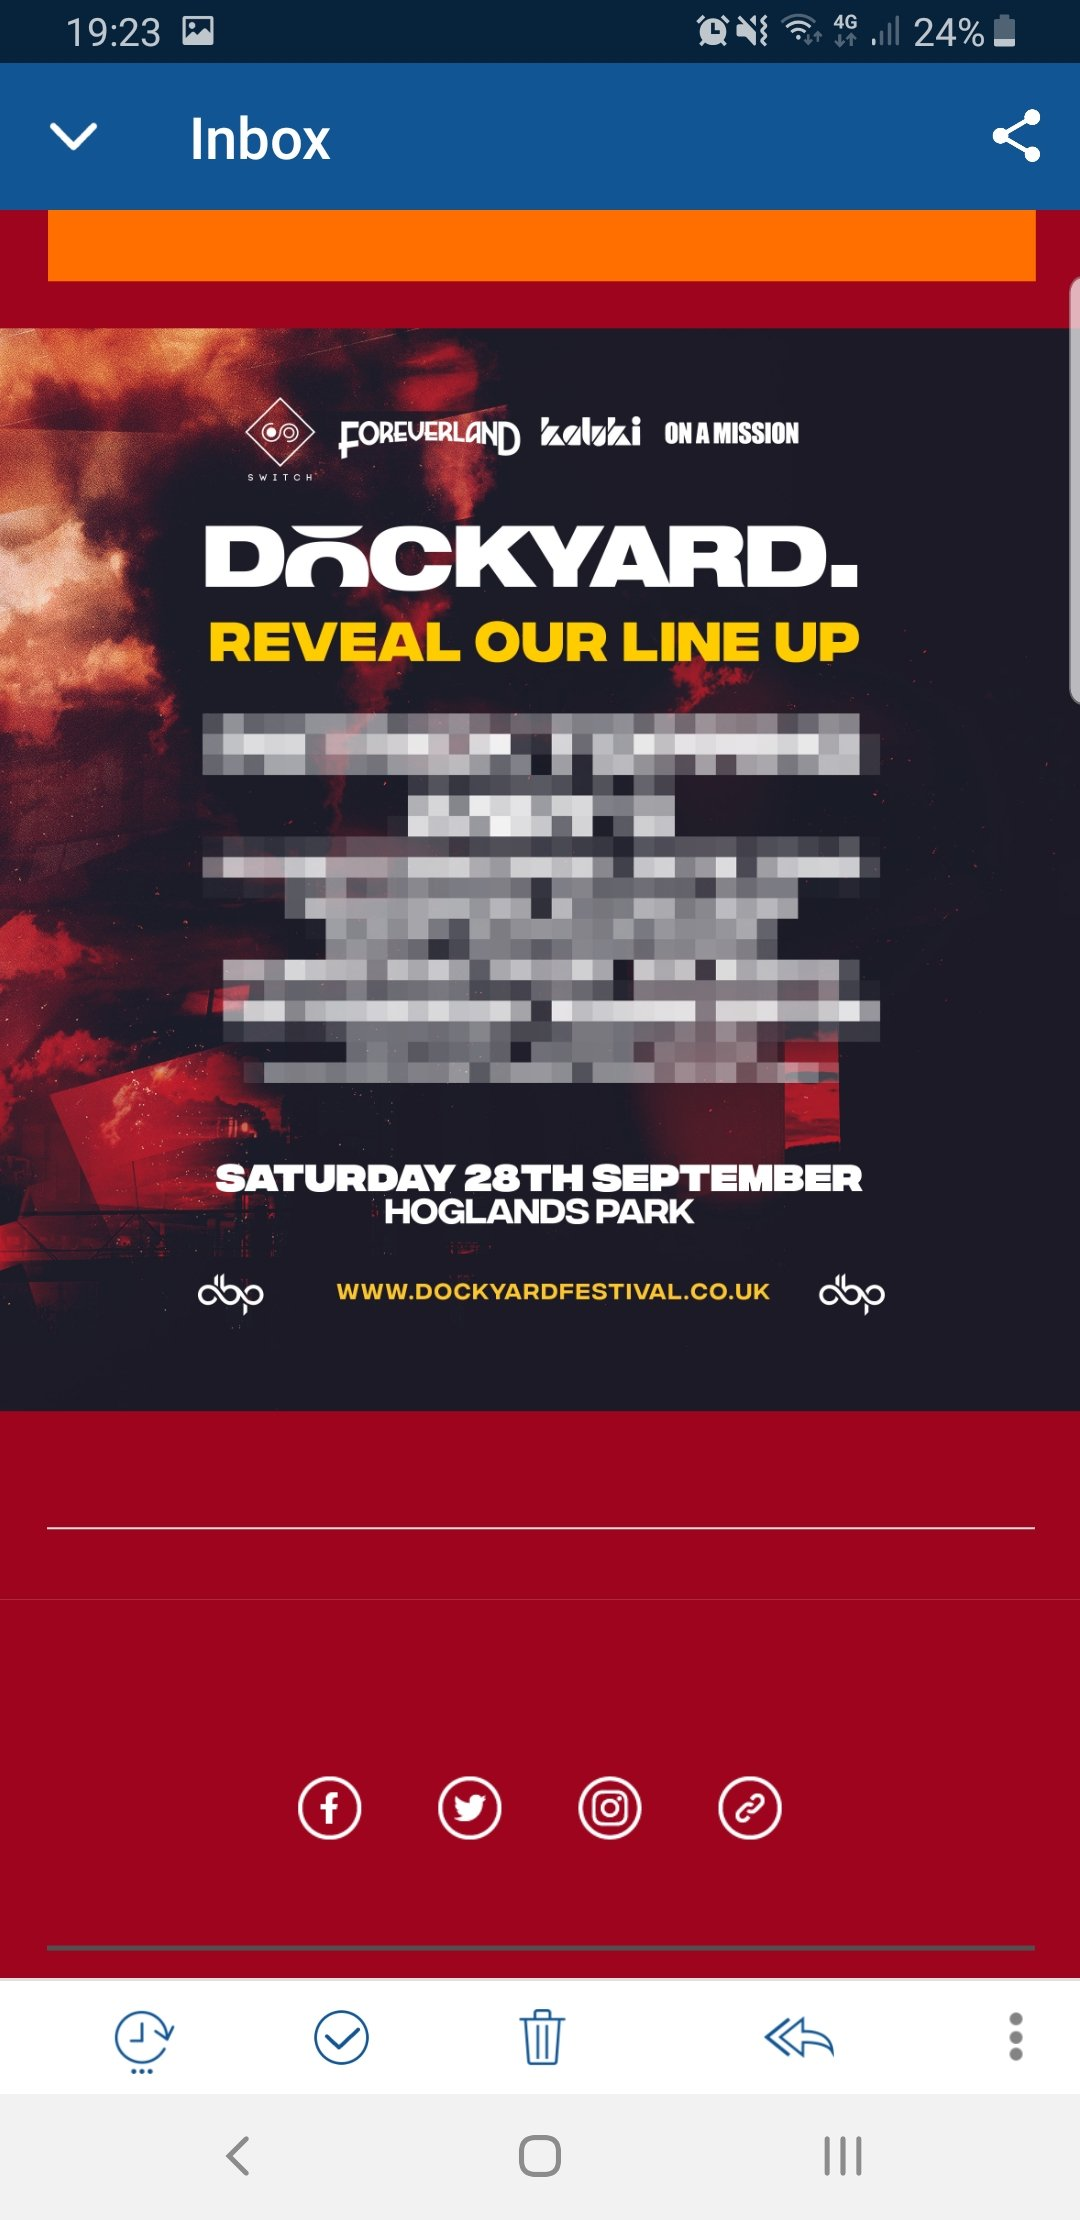 New UK Dockyard Festival announced, in a really interesting way... 2